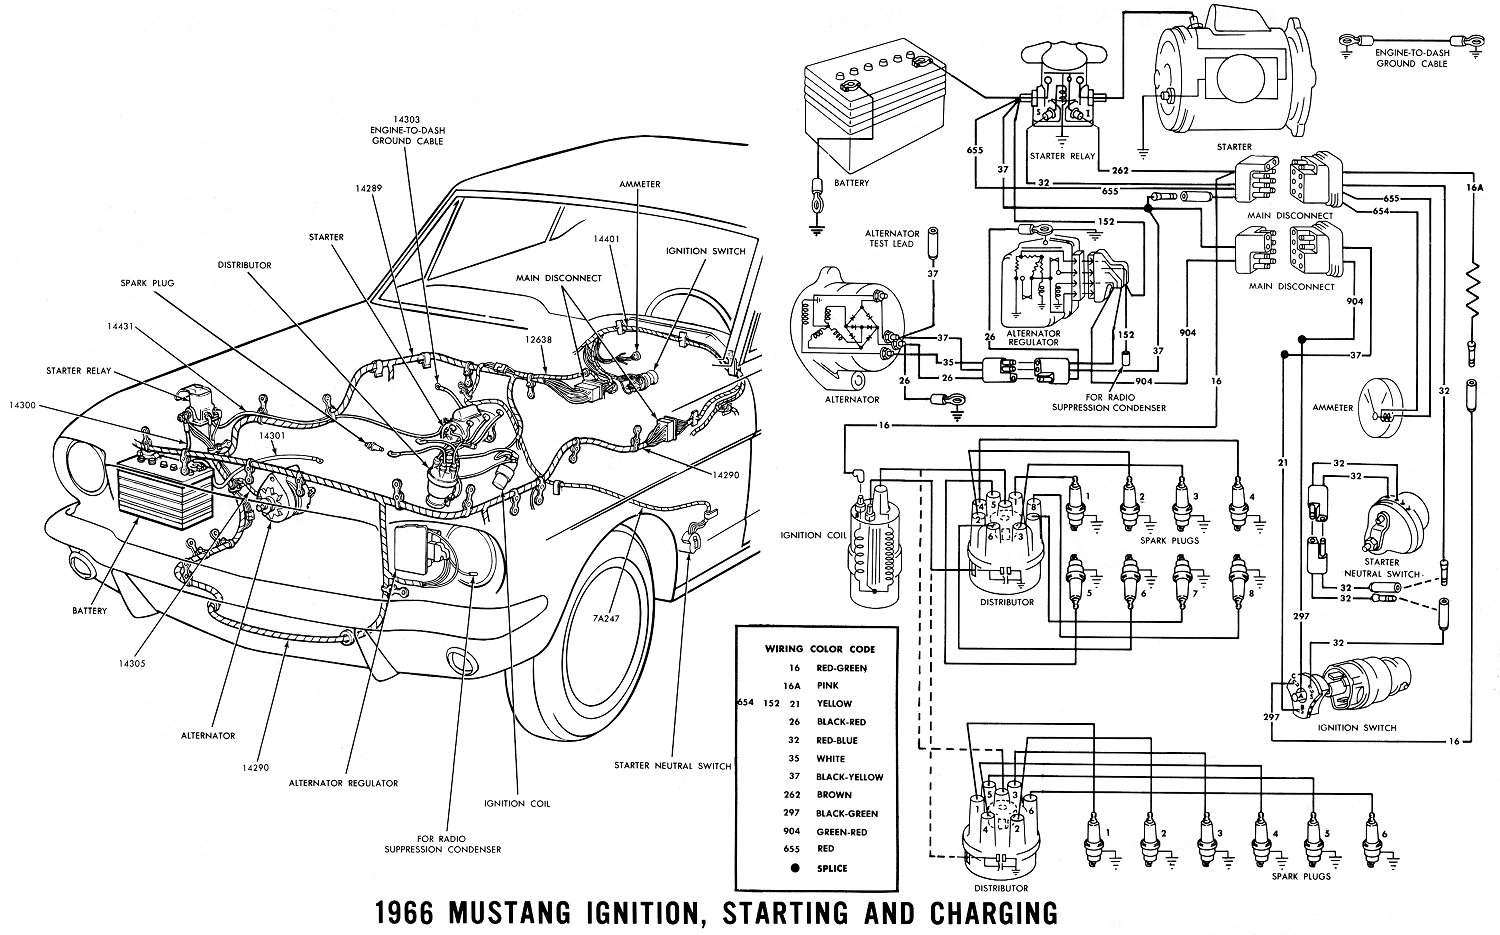 66 chevy c10 wiring diagram 66 trailer wiring diagram for auto 66 chevy c10 wiring diagram 66 trailer wiring diagram for auto electrical and engine parts